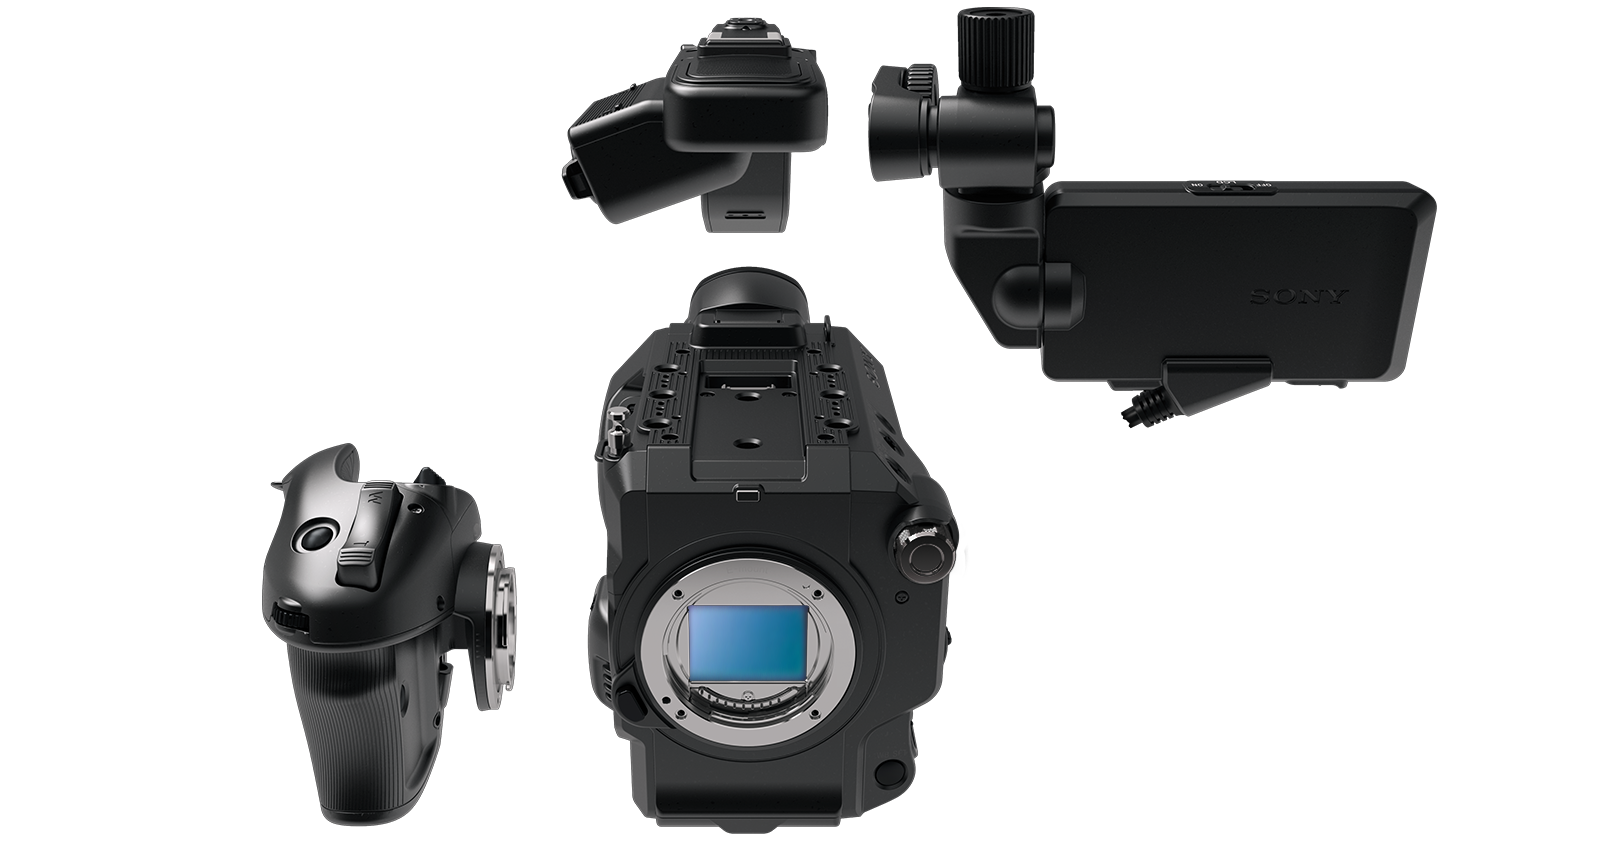 PXW-FS5 II with Smart Grip, LCD screen and top grip detached.